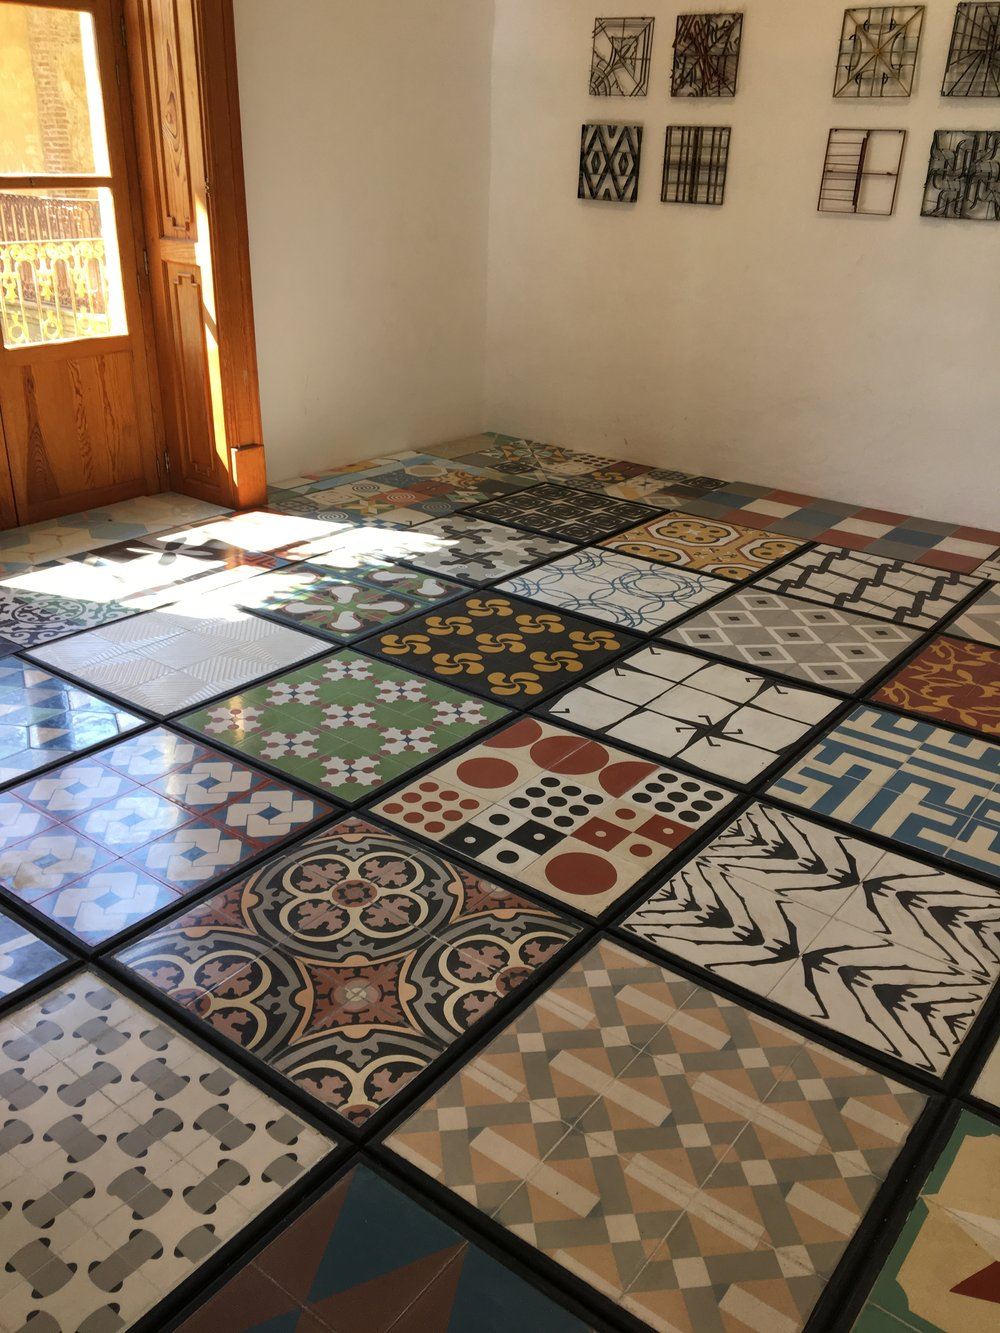 Installation at a handmade tile show